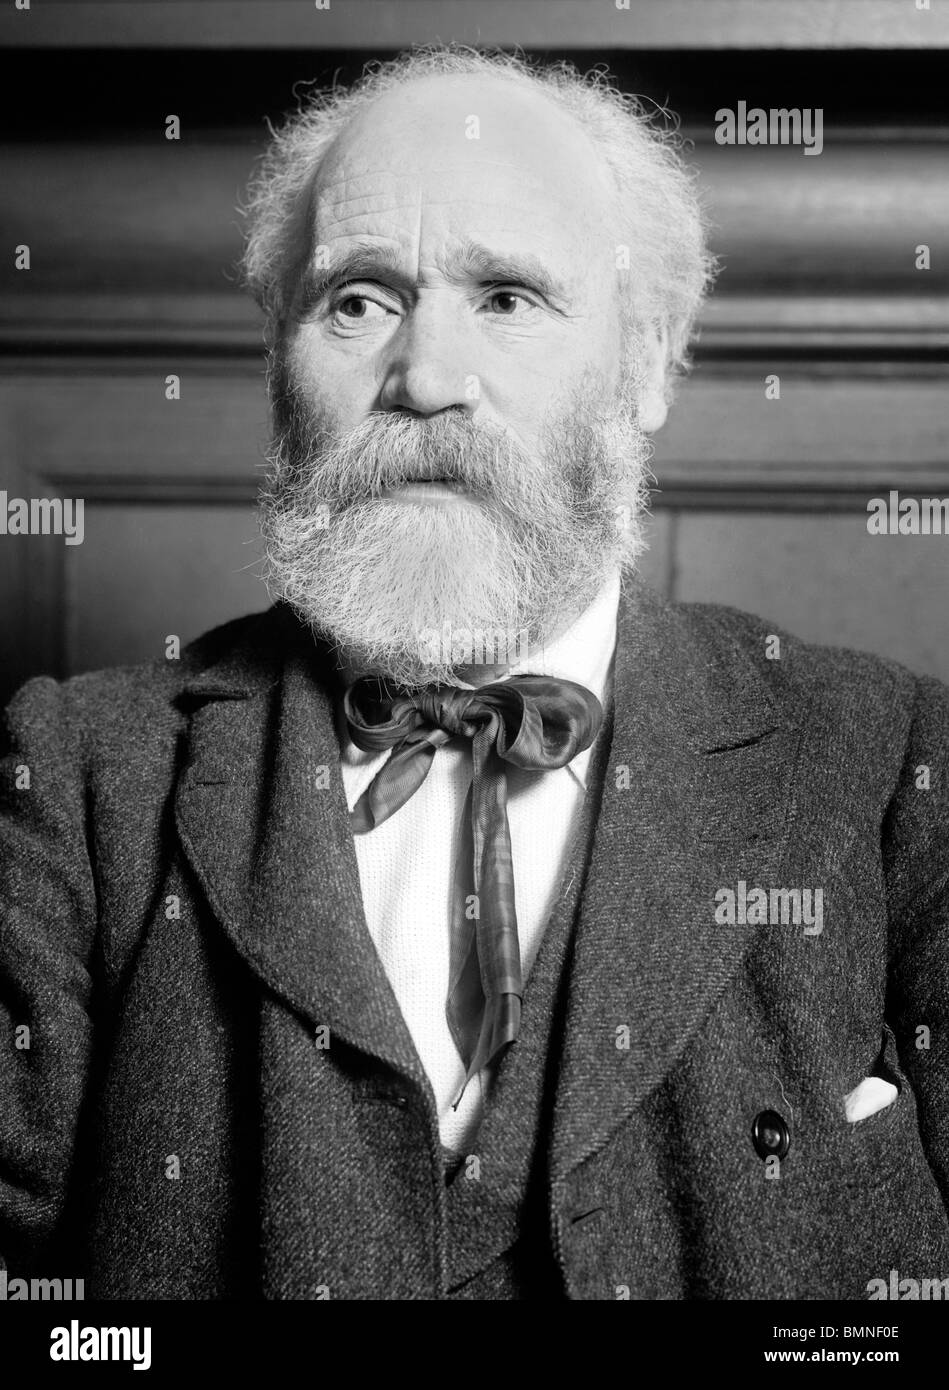 Photo c1909 of Scottish socialist James Keir Hardie (1856 - 1915) - first Independent Labour MP and first Labour Stock Photo